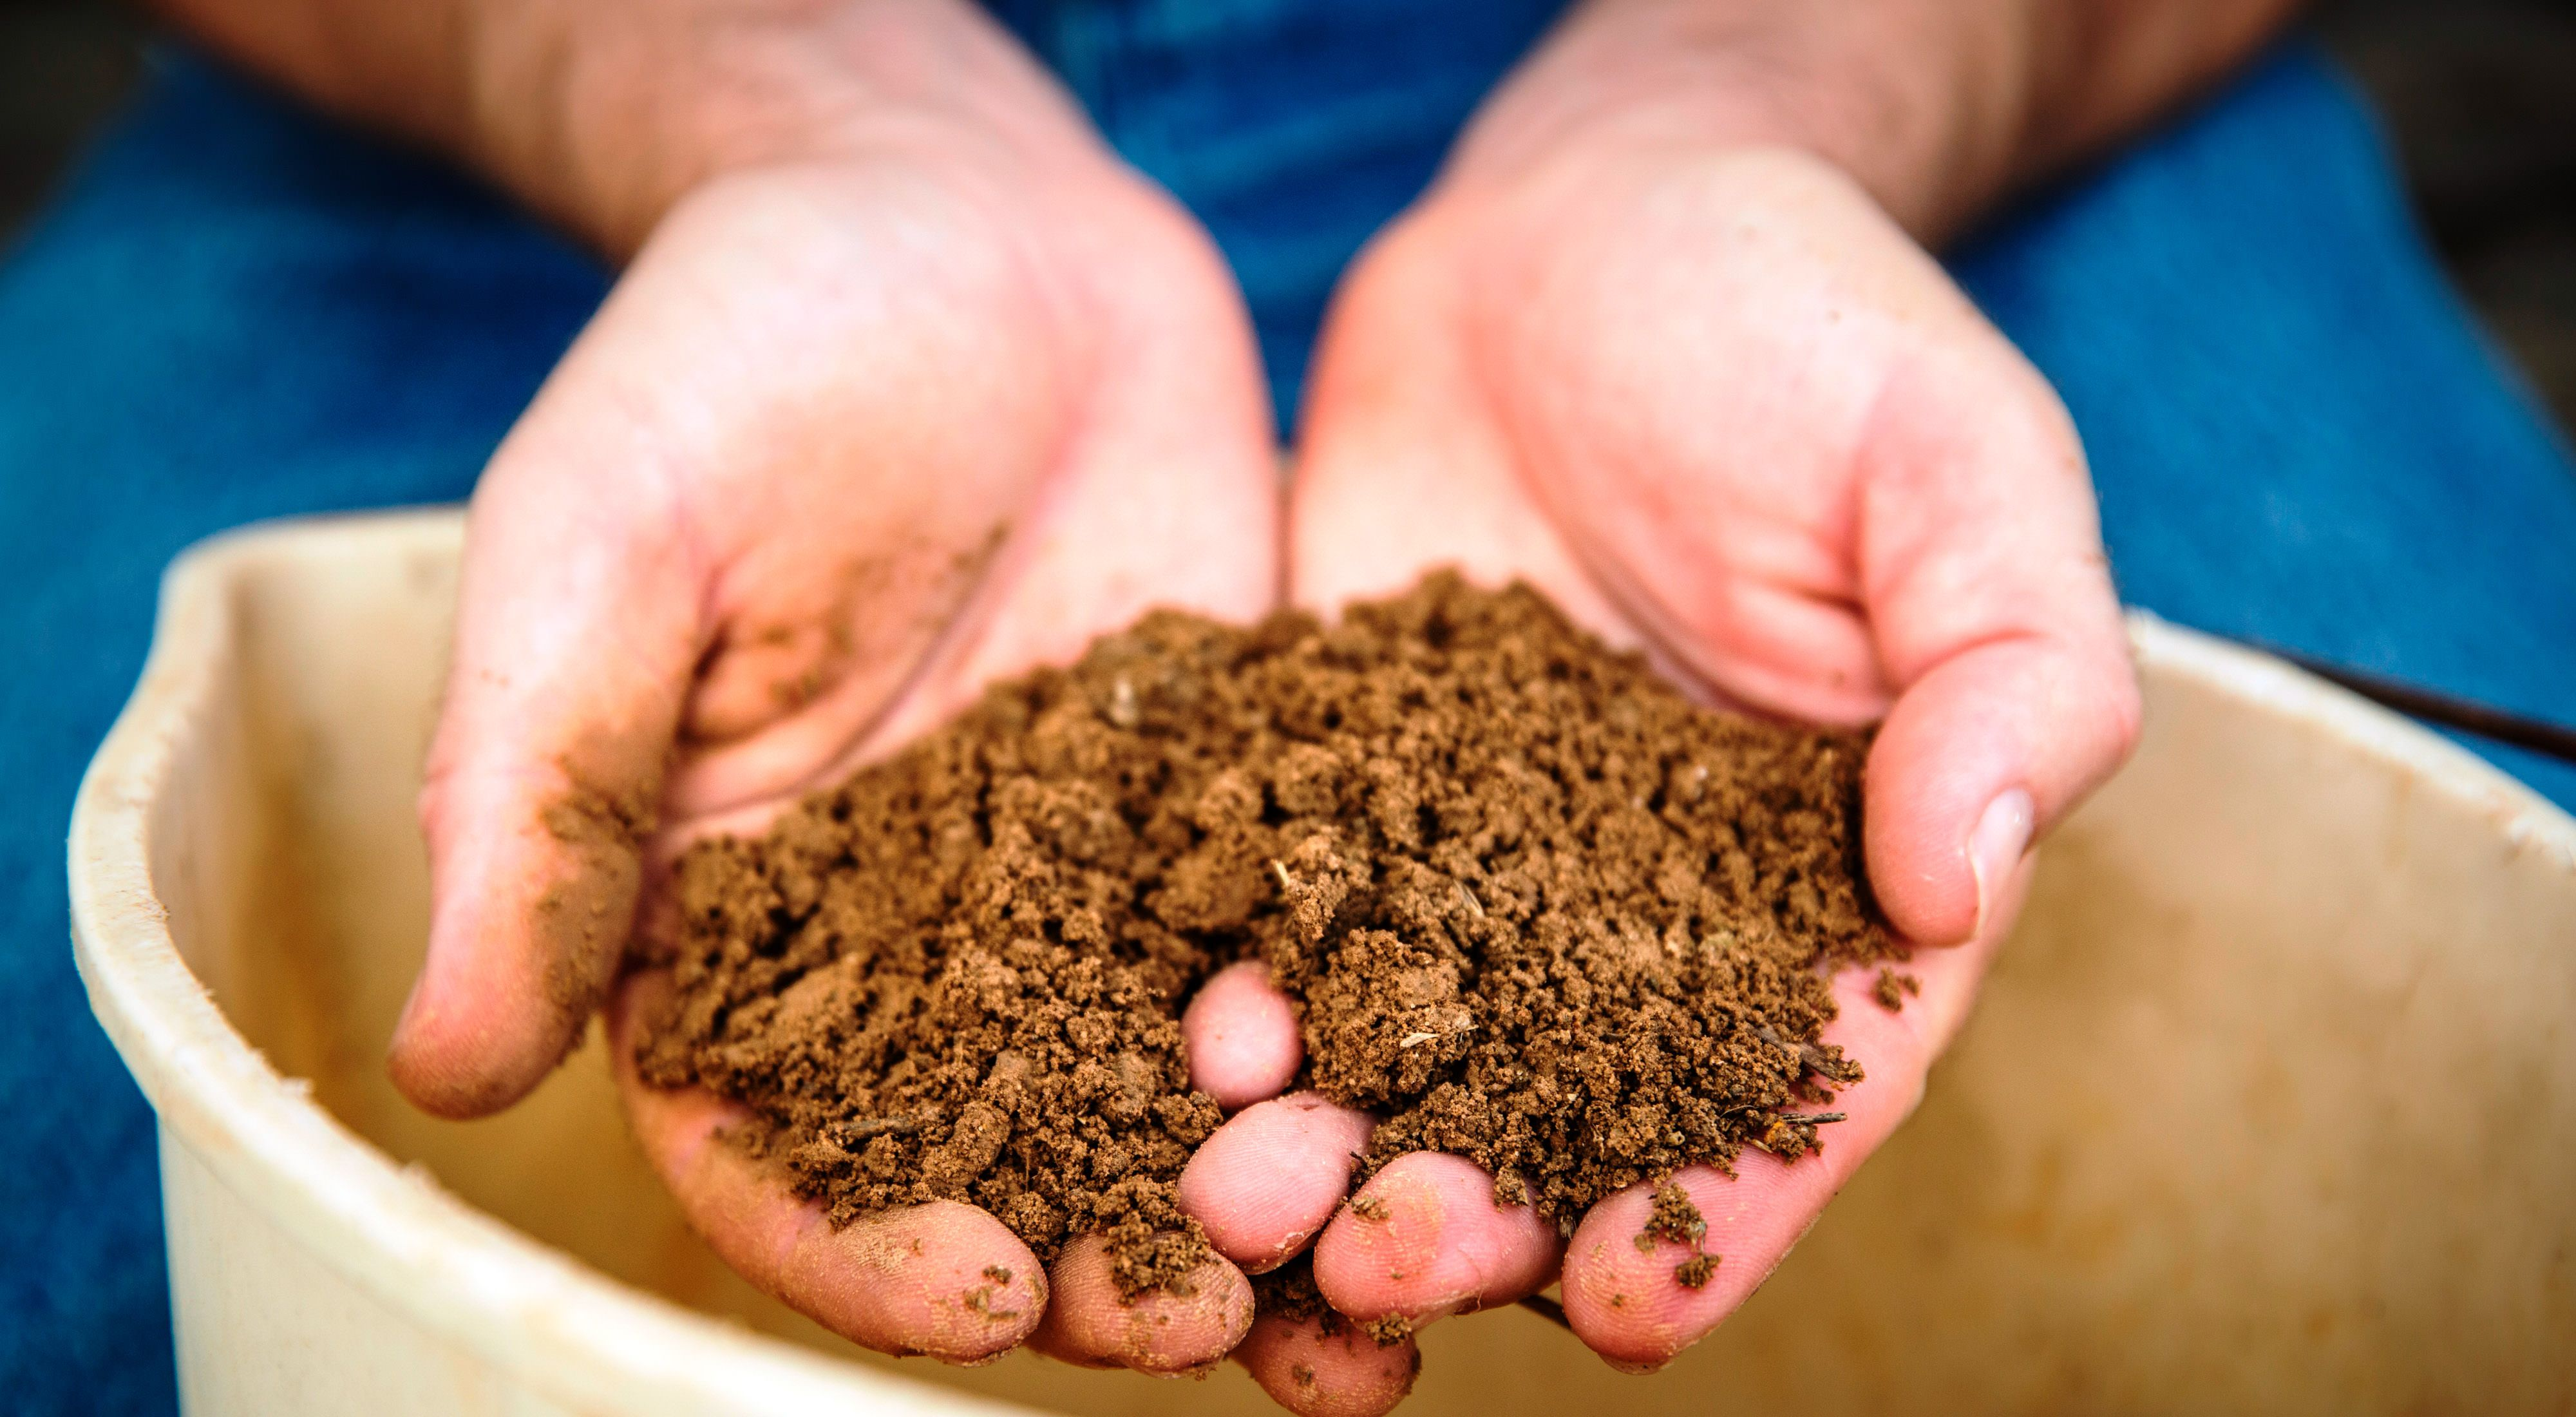 Two hands hold health soil.